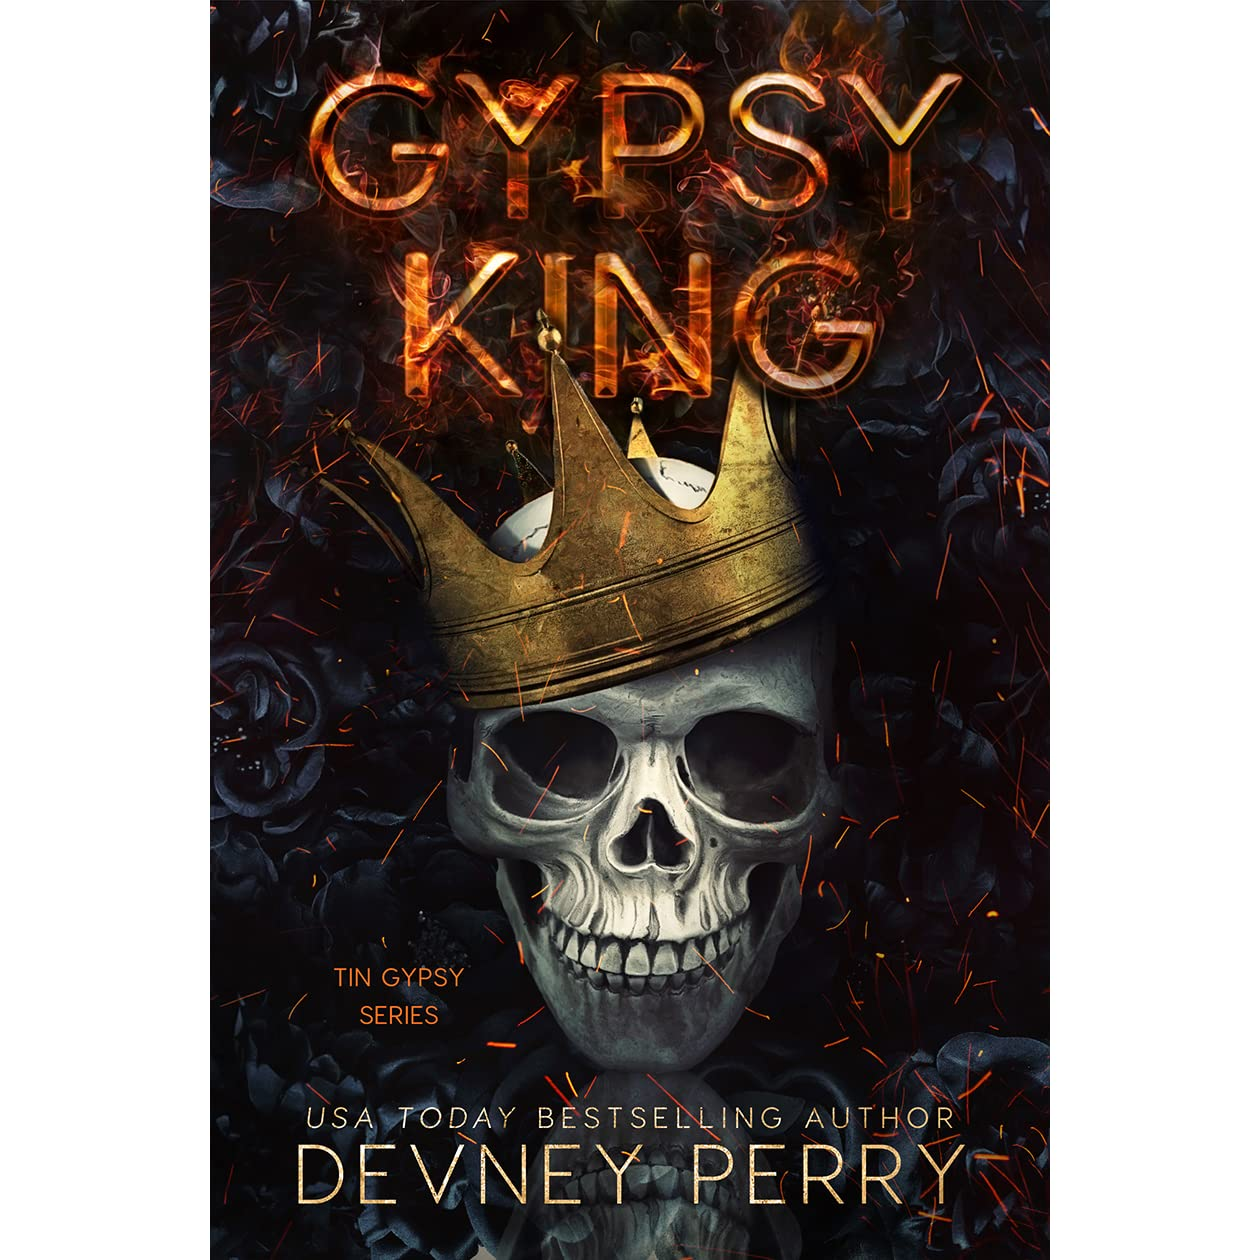 Image result for gypsy king by devney perry